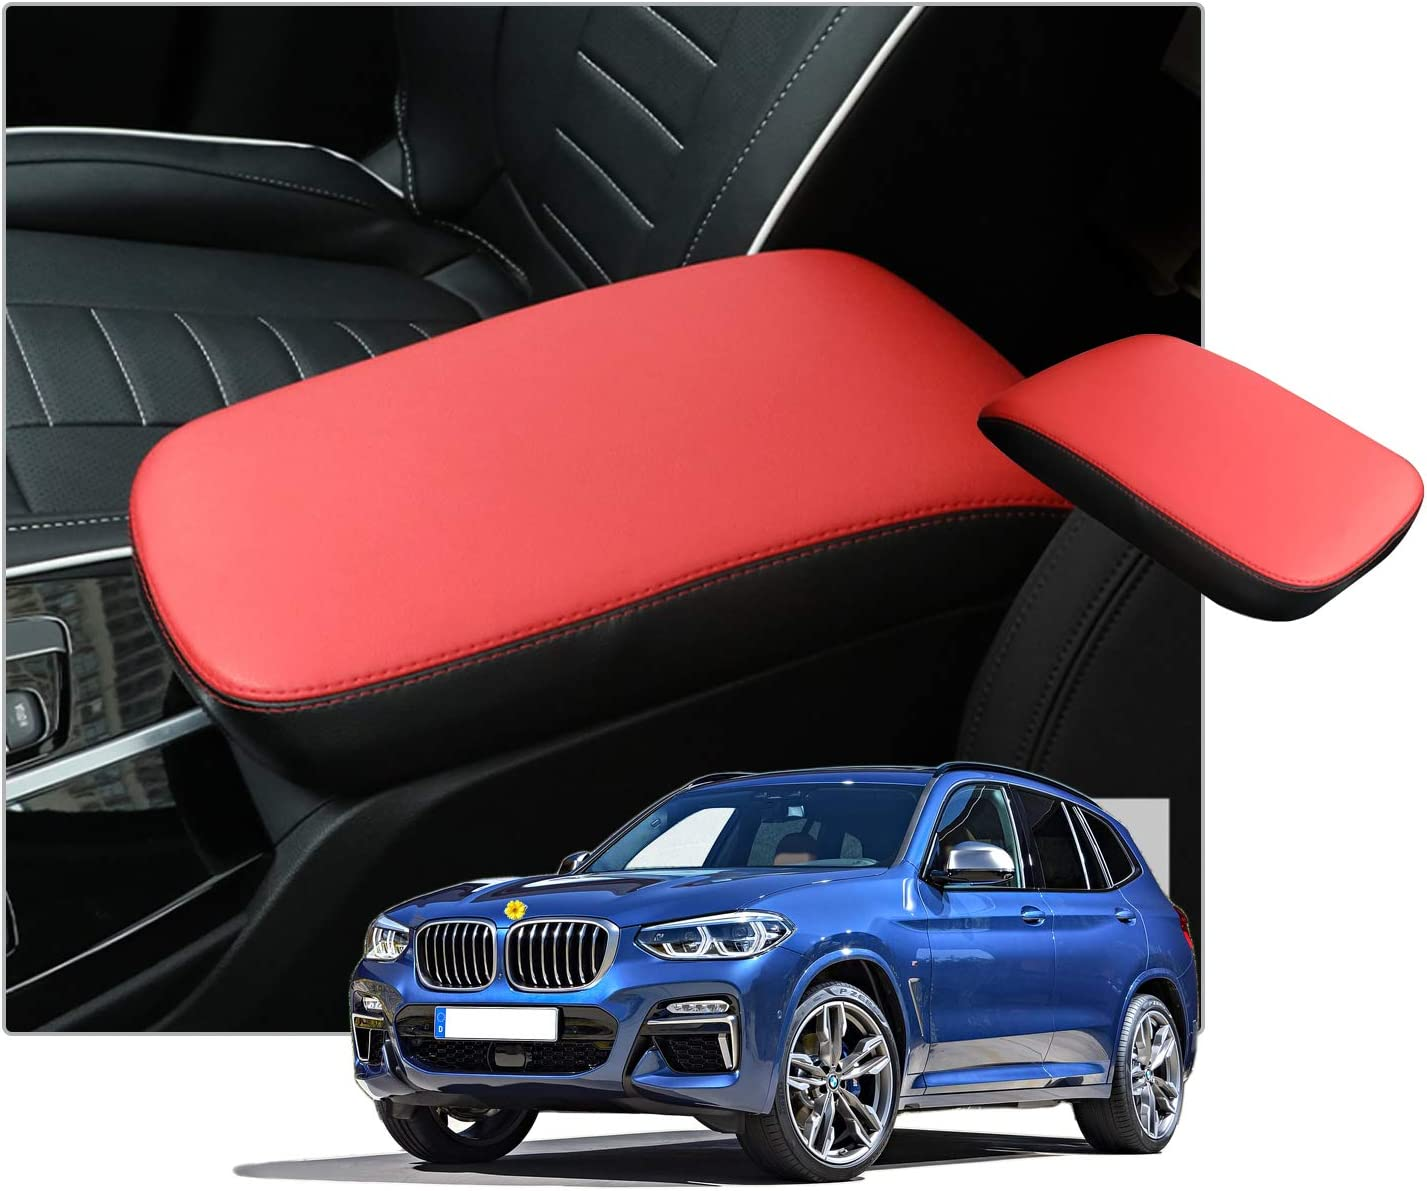 Black CDEFG Car Armrest Box Cover Center Console Saver Covers for BM W X3 G01 leatherette leather Interior Accessories